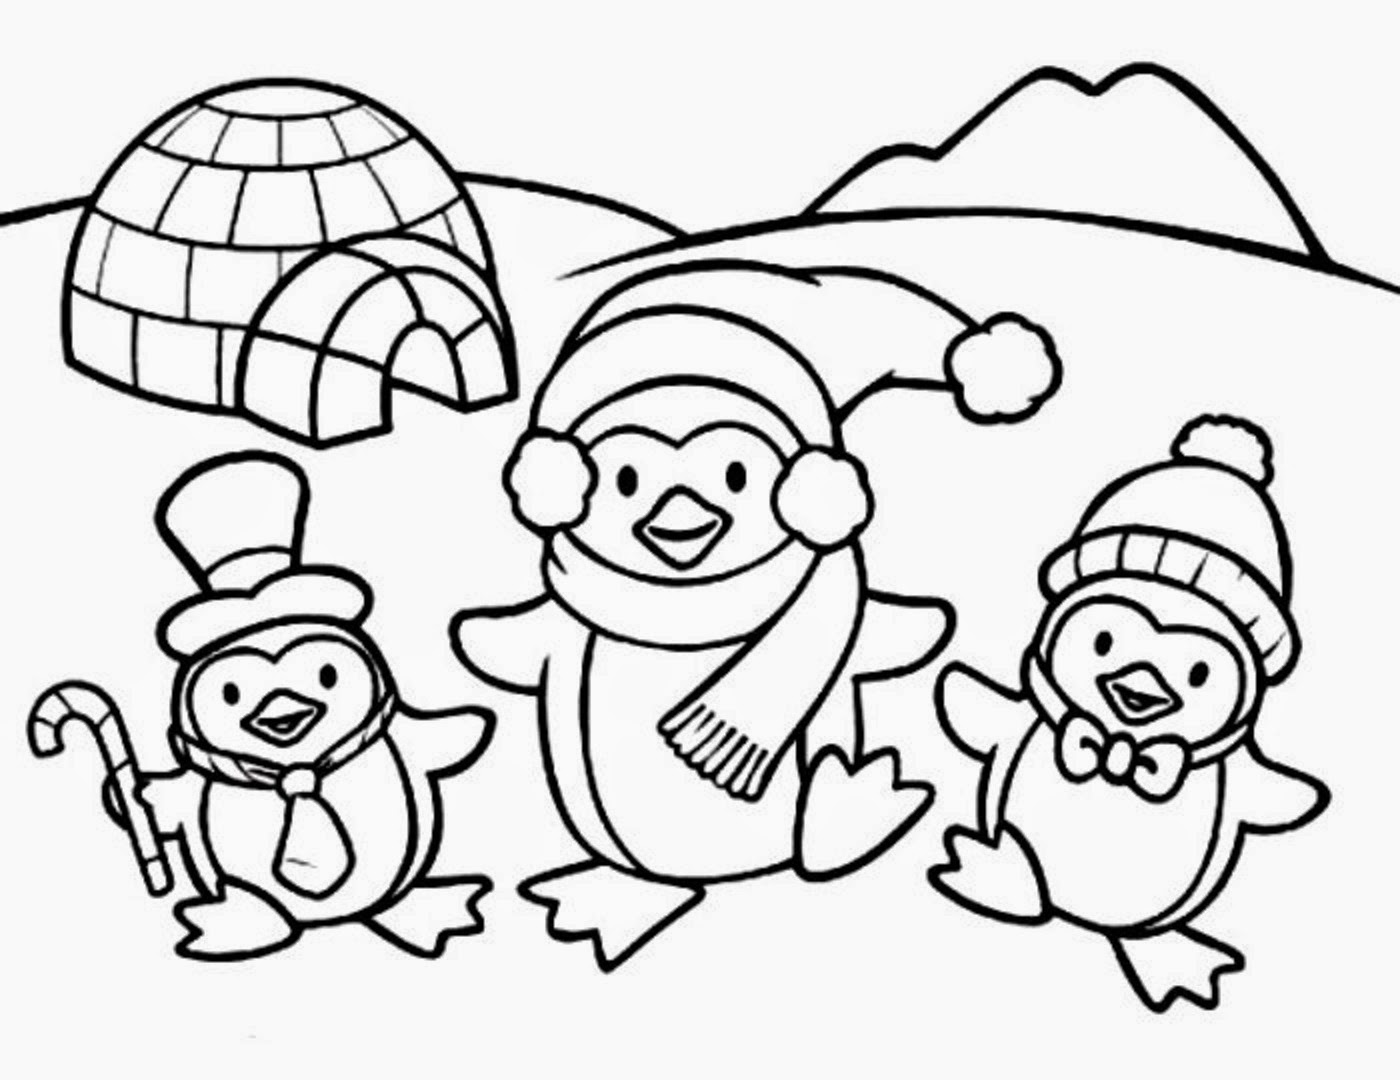 cute baby penguin coloring pages cute baby penguin coloring pages only coloring pages cute penguin baby pages coloring